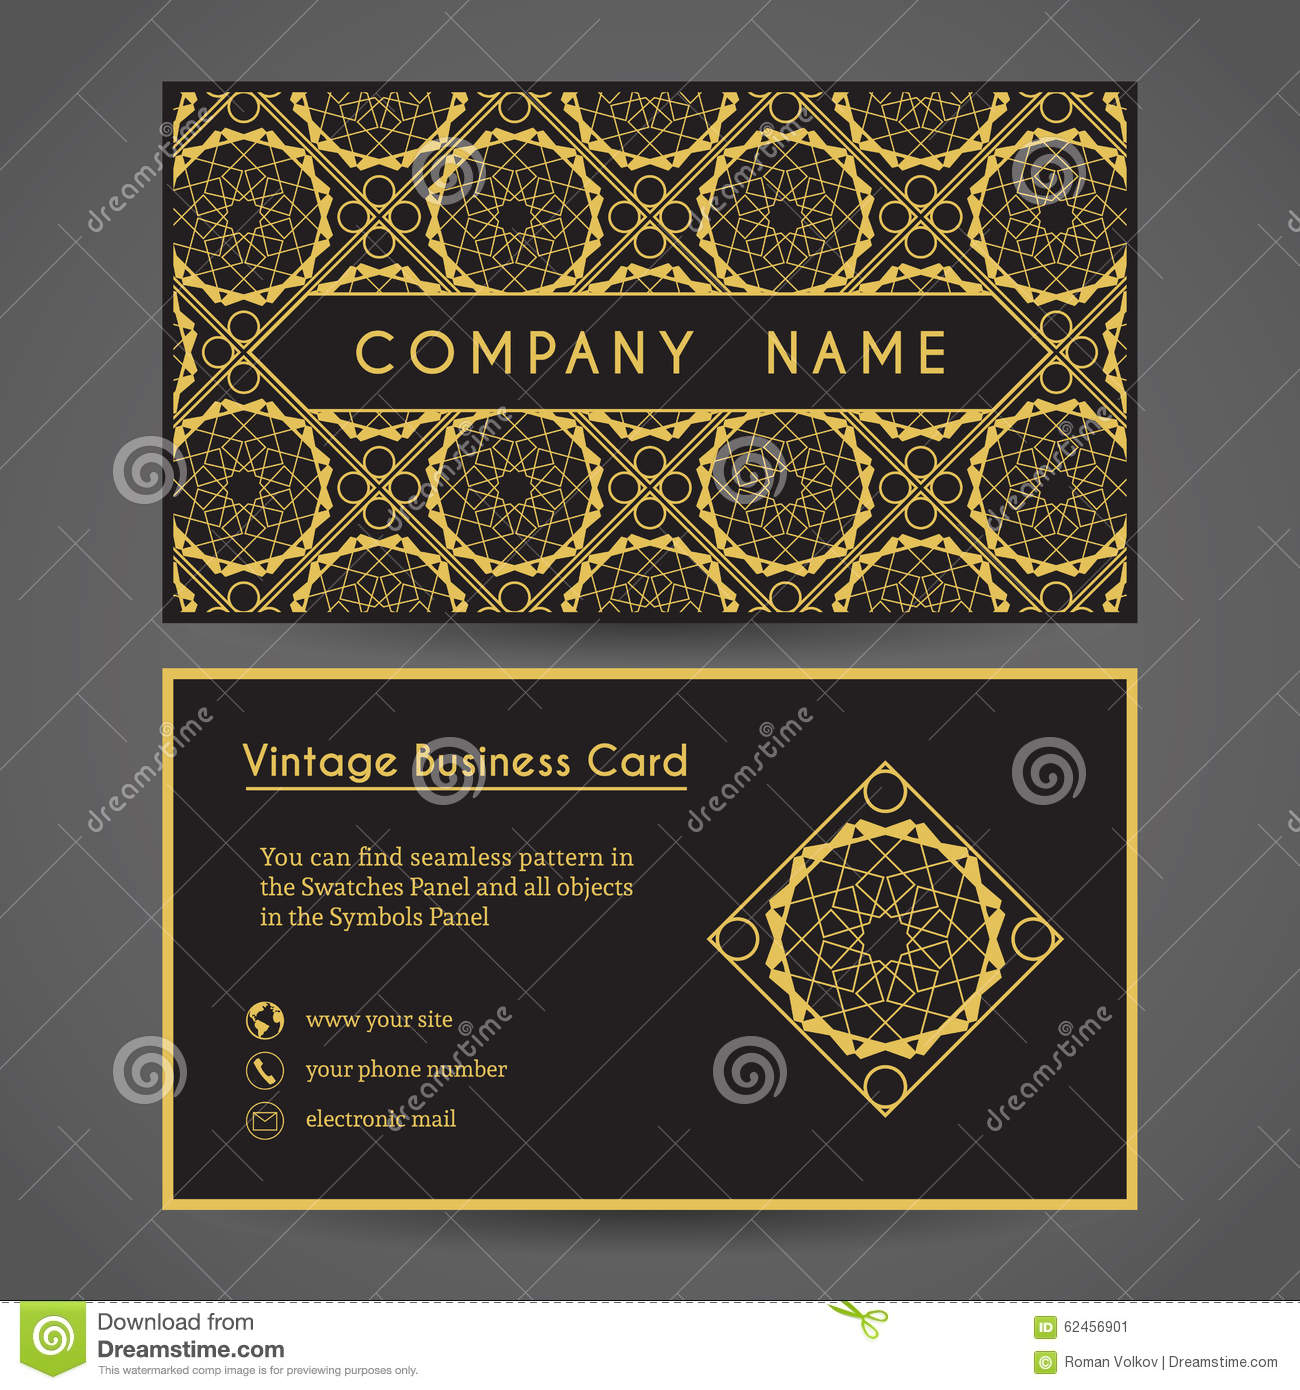 Vector Business Card Template Stock Vector - Illustration of company ...